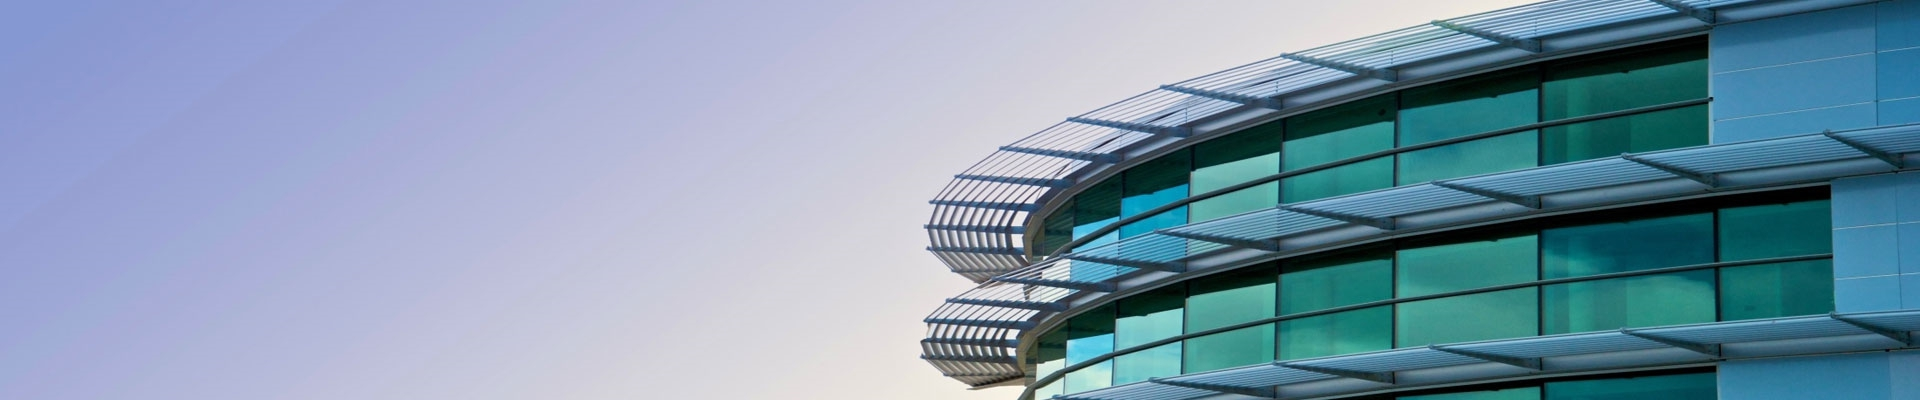 A glass facade is protected by a high-quality nano- coating